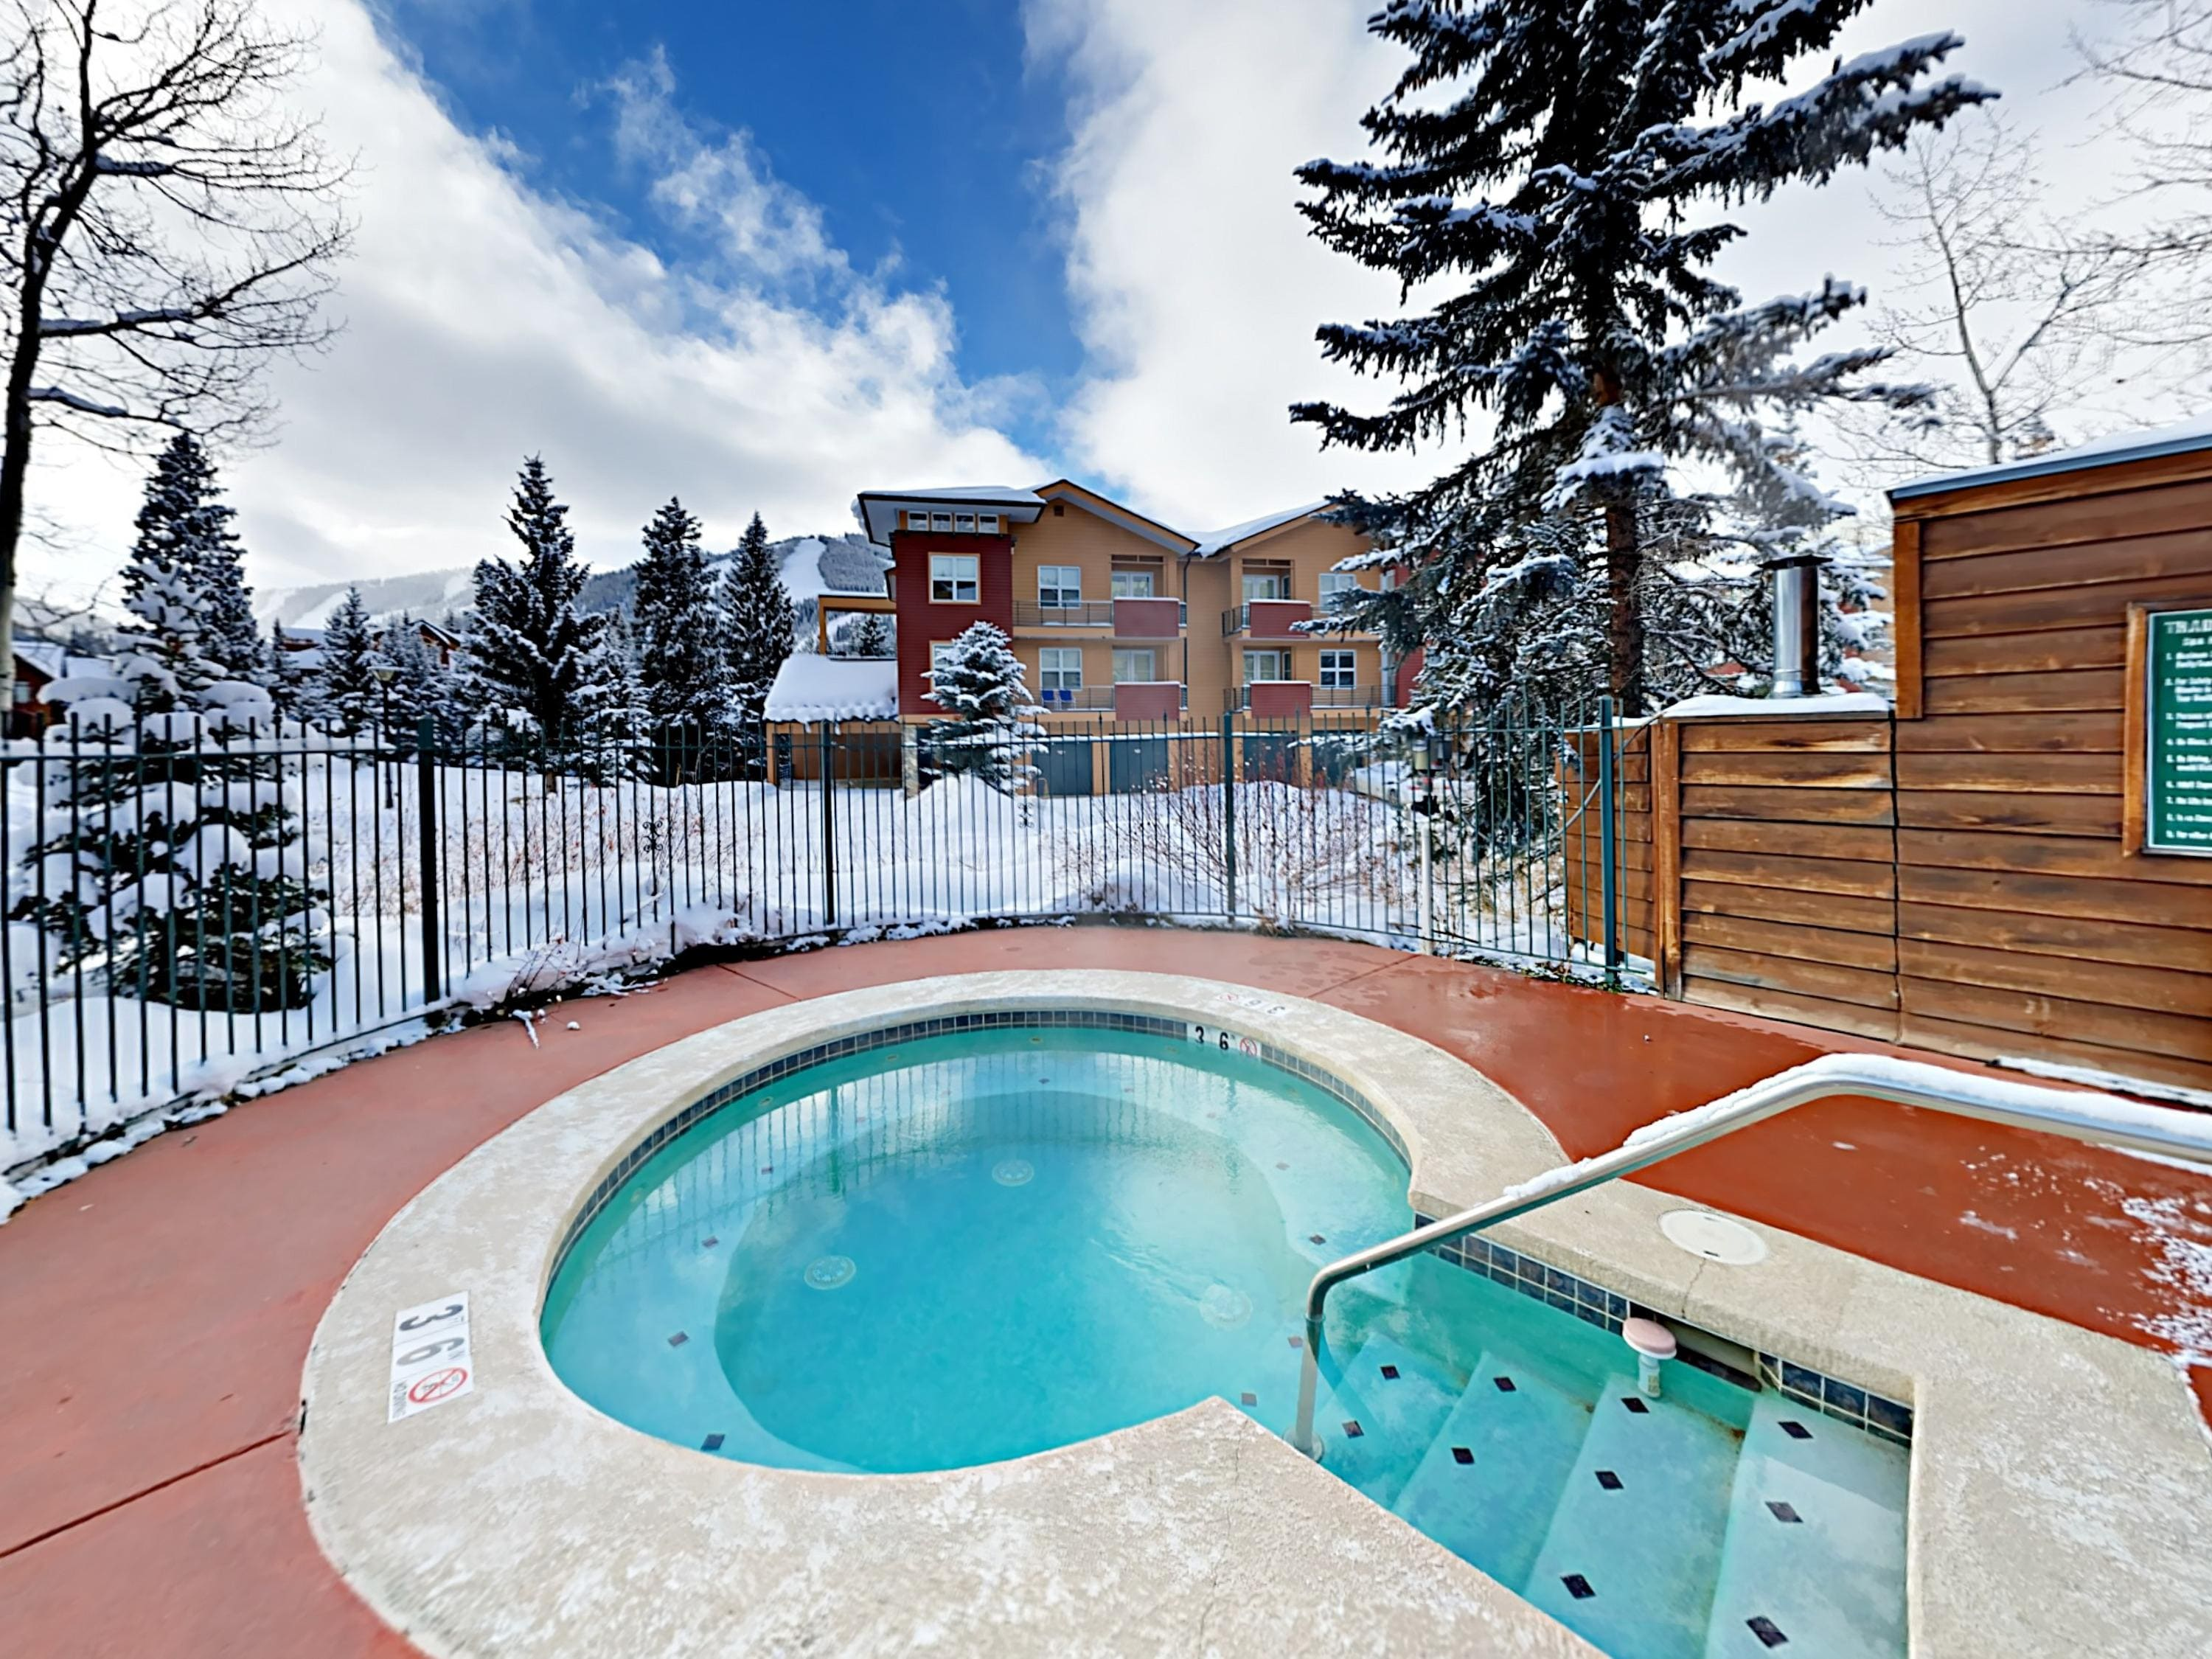 Property Image 2 - Elegant River Condo w/ Balcony, Close to Skiing